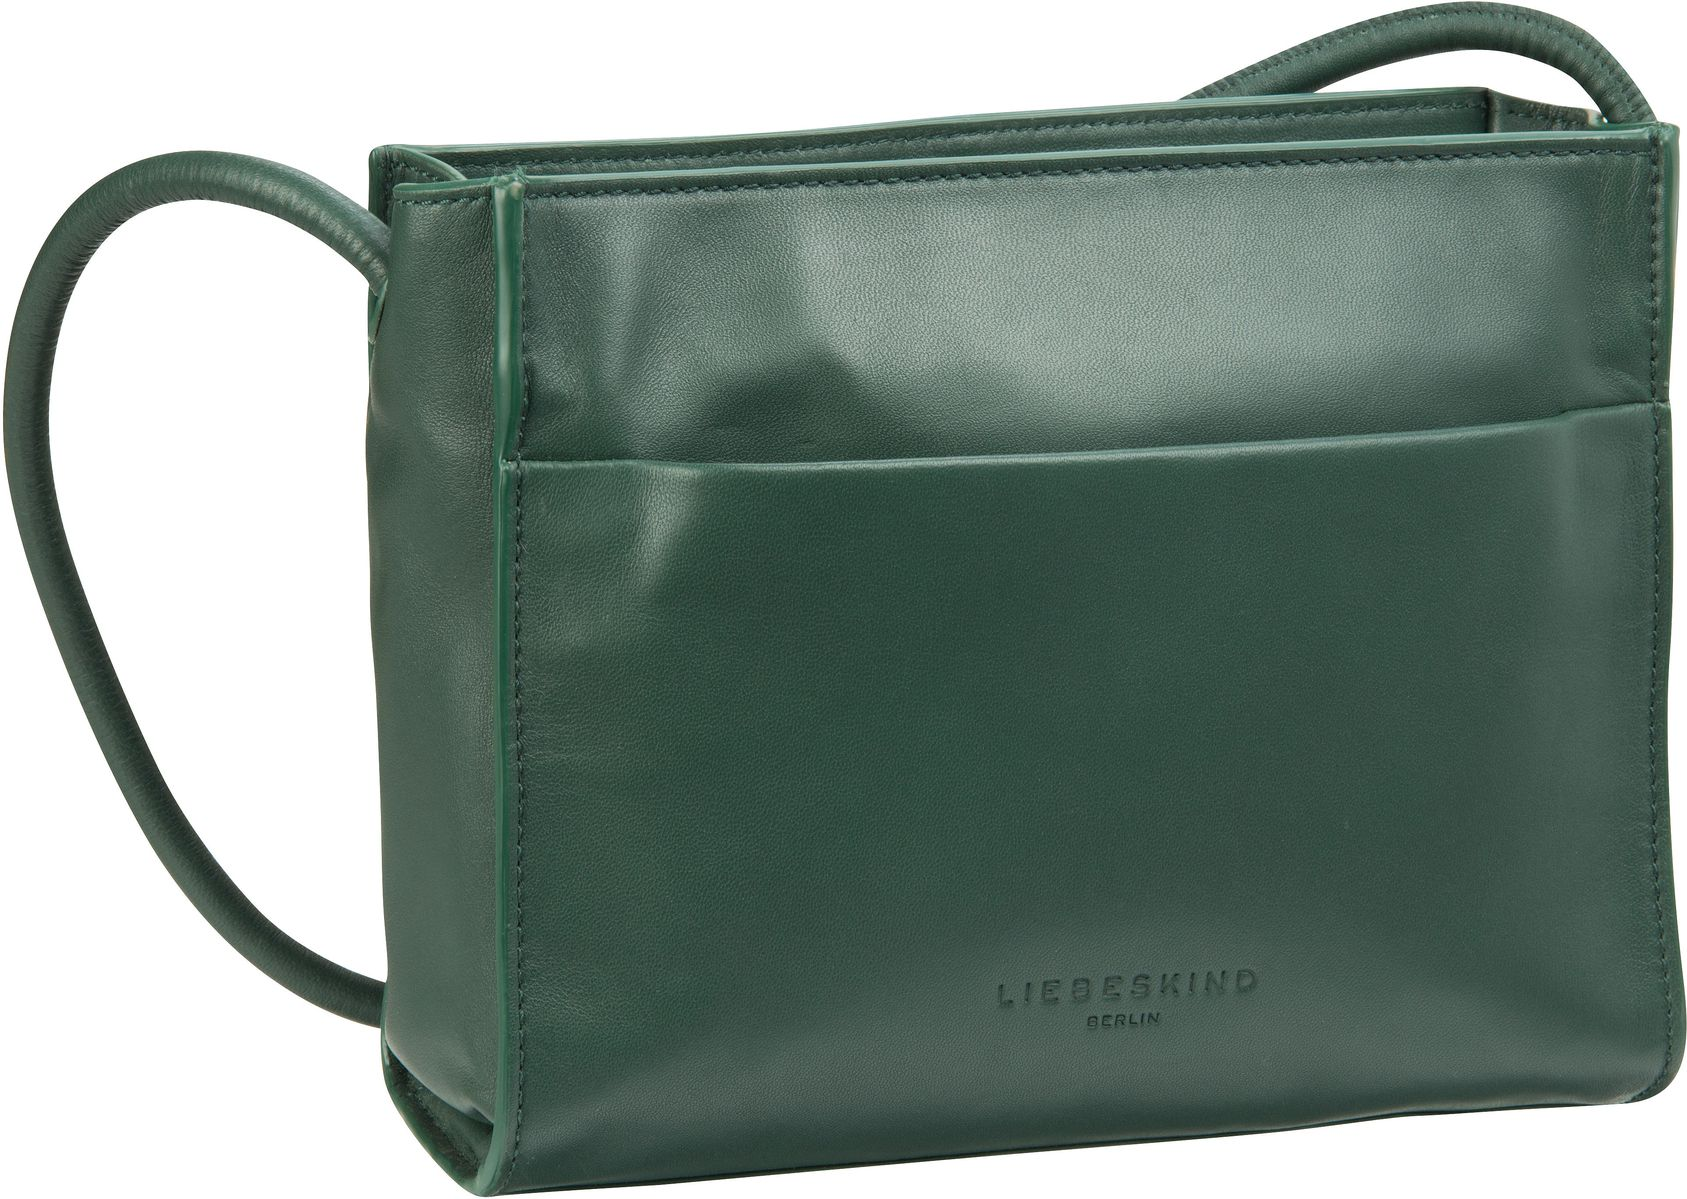 Berlin Umhängetasche Drawstring Crossbody M Dark Green